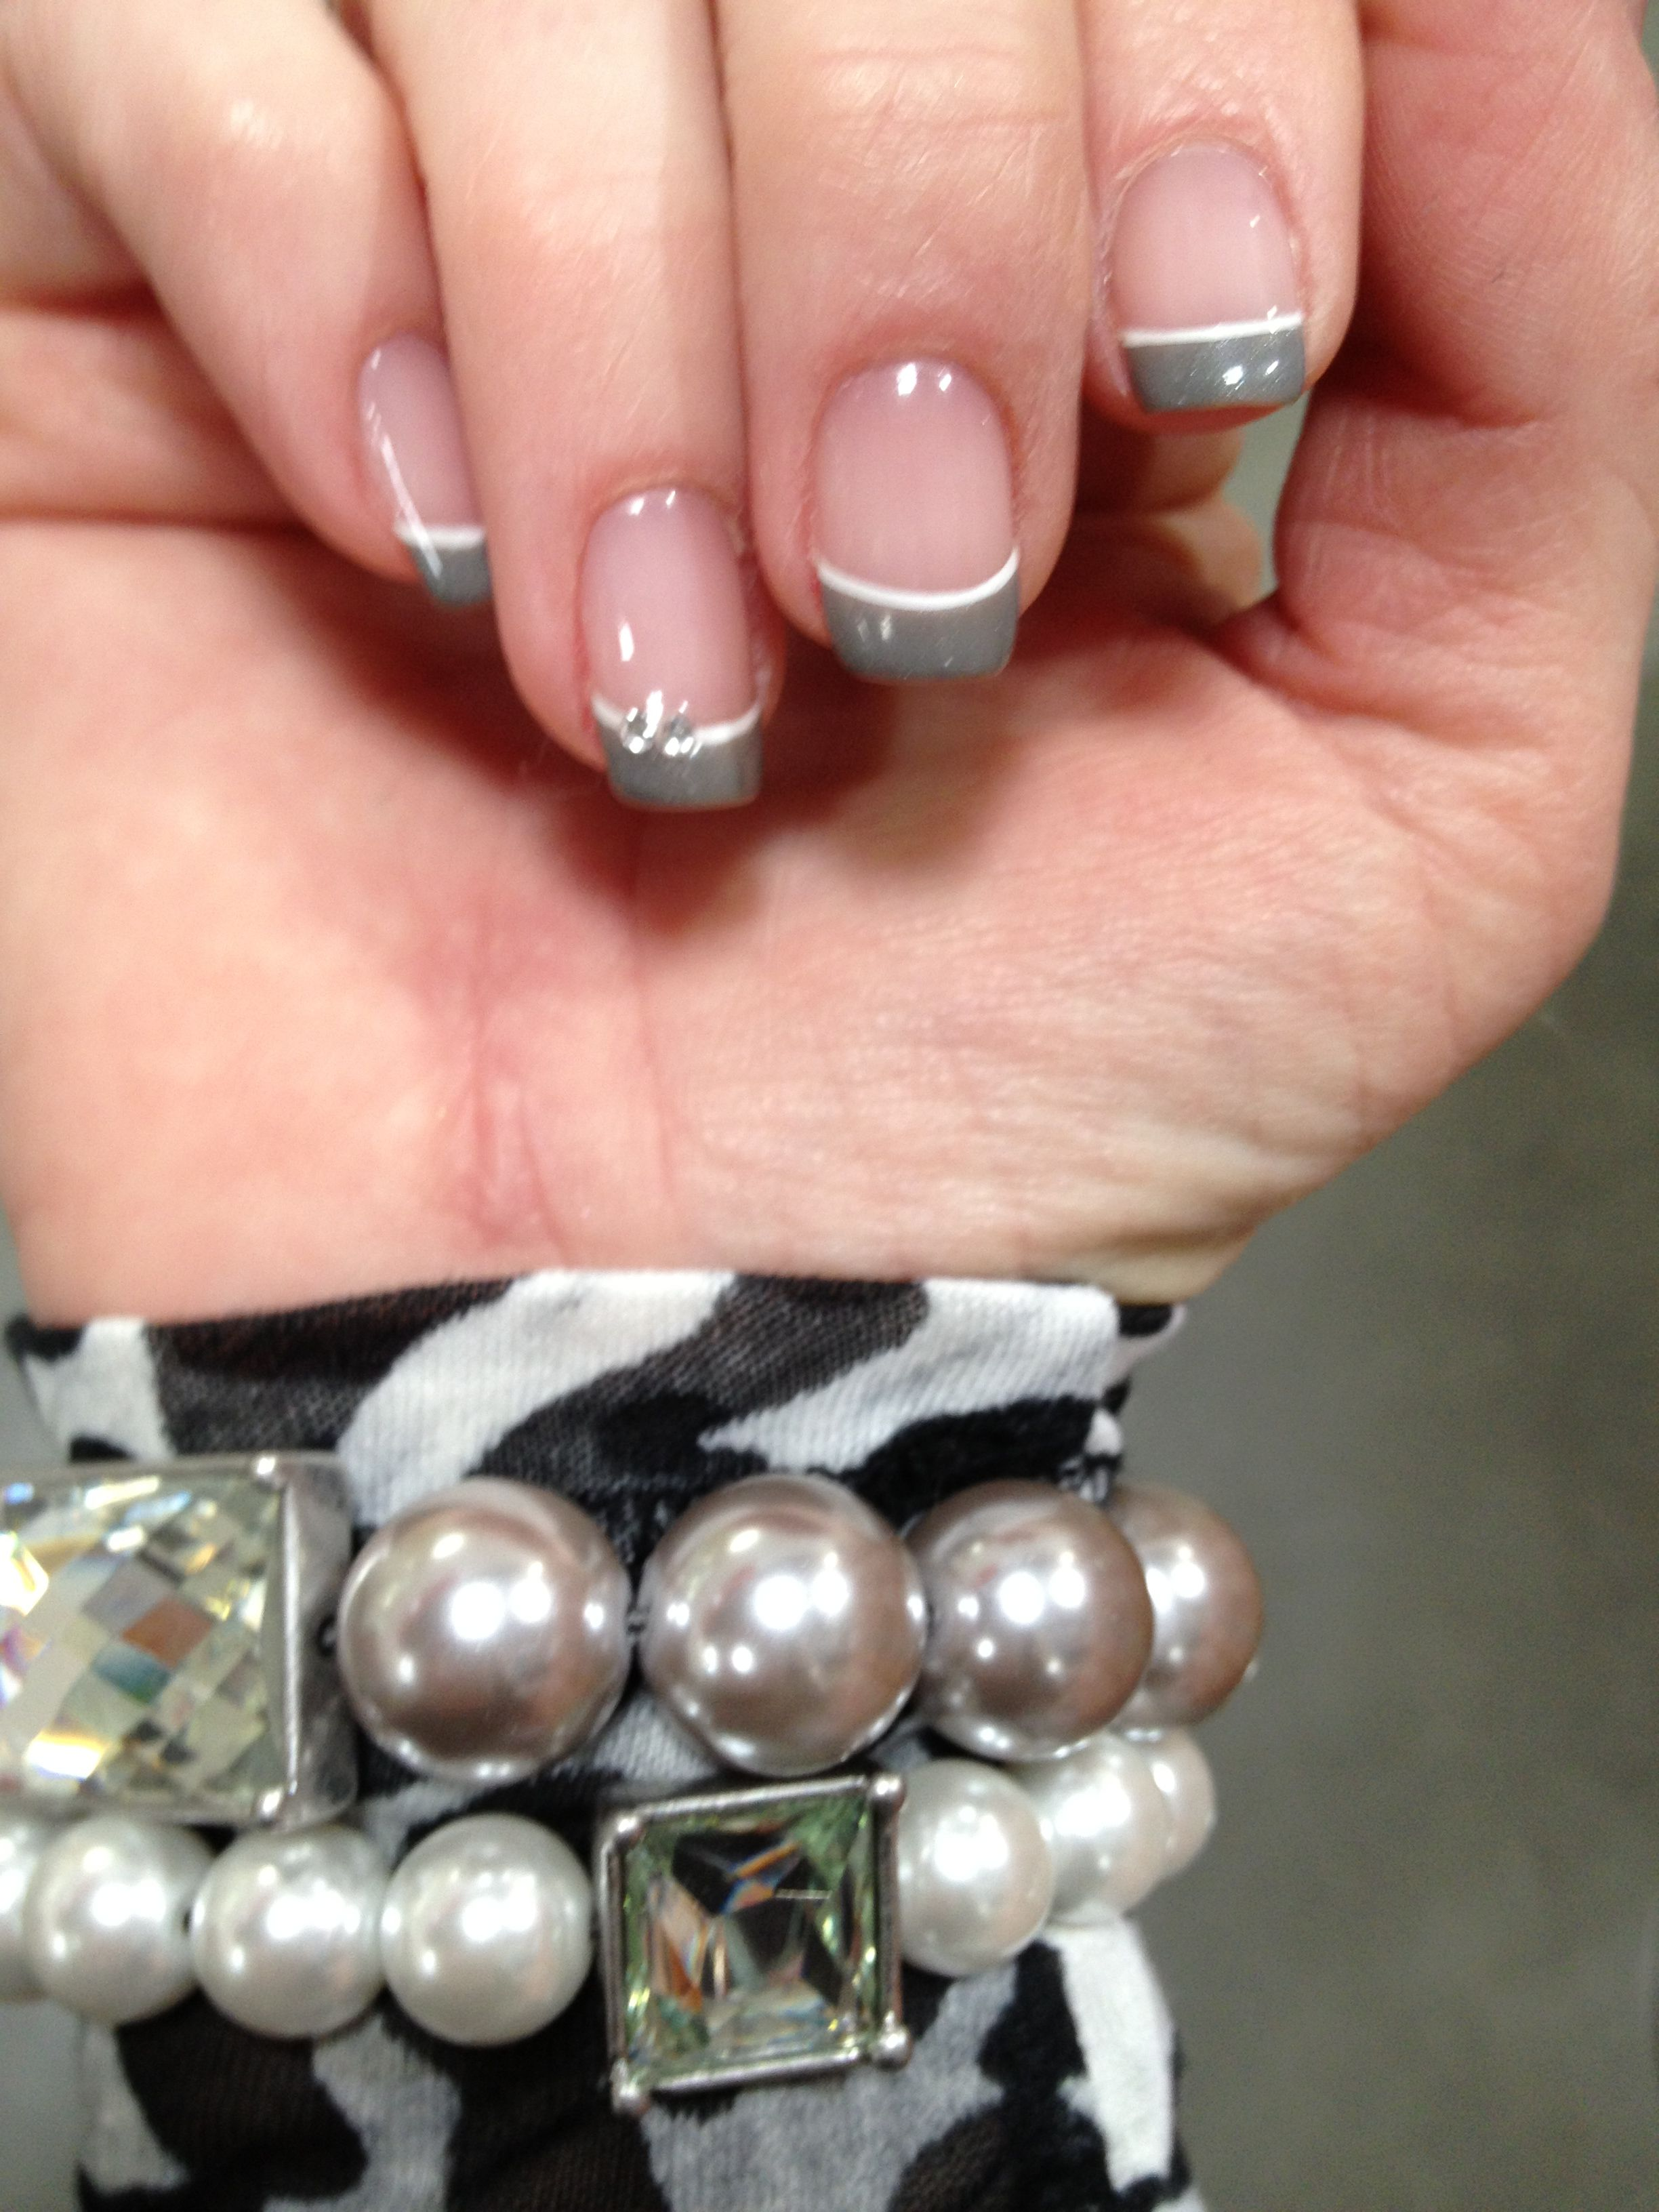 Nails- Grey French manicure | Genny Lee designs personal posts ...